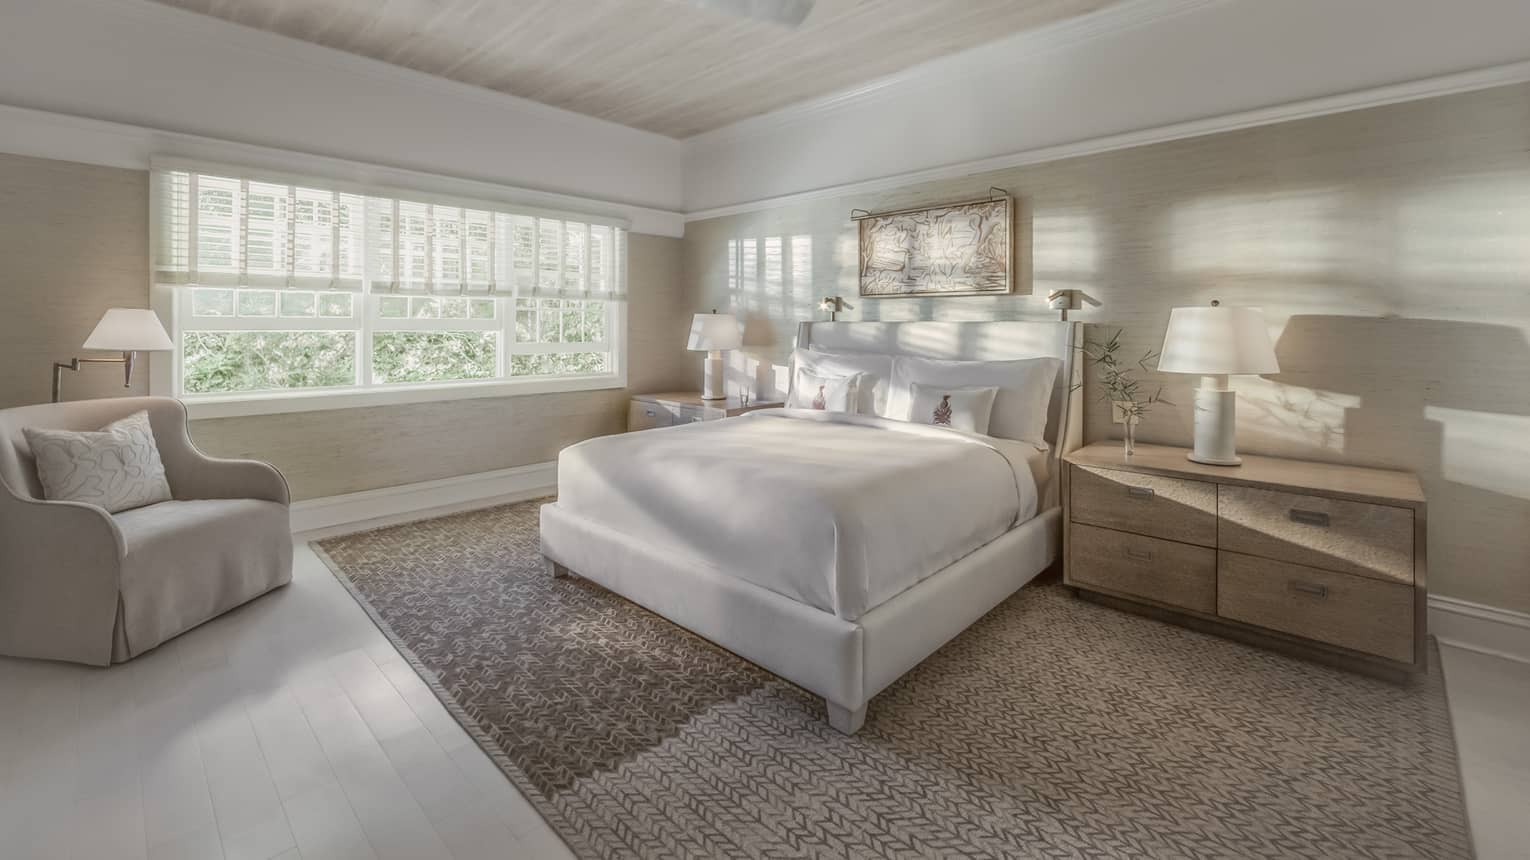 Sunlight and shadows shine through the window of a master suite bedroom